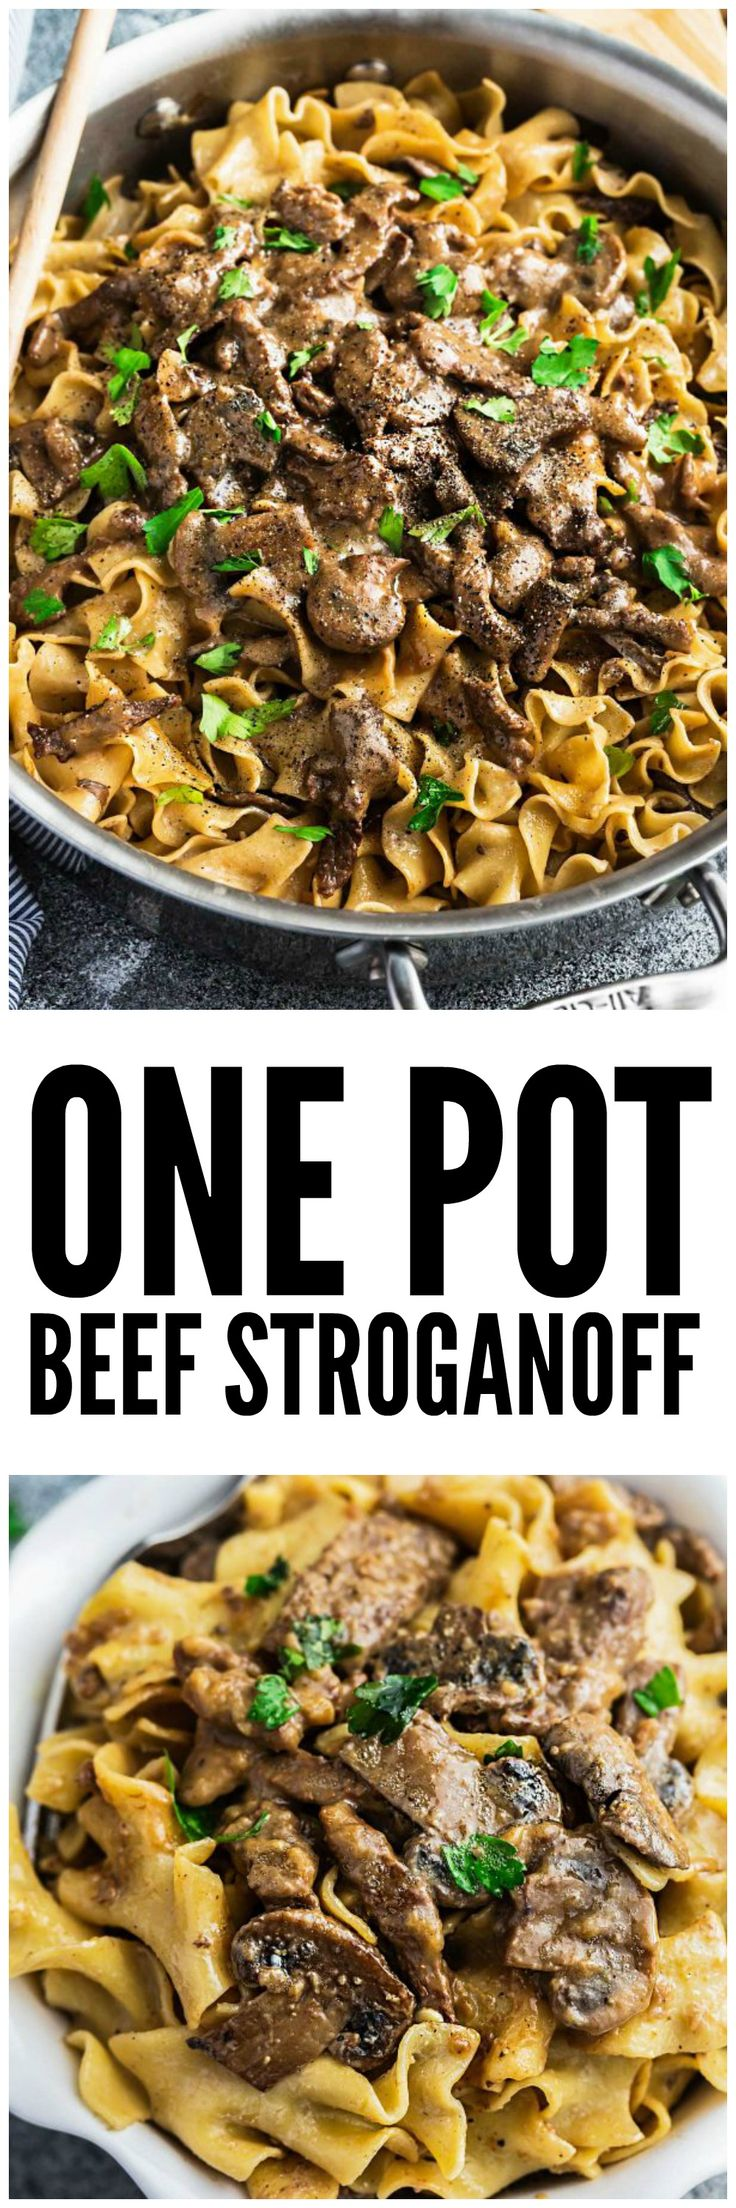 One Pot Beef Stroganoff - all the delicious flavors you love about this classic comfort food made easier in just ONE pan! Strips of tender beef, soft egg noodles coated in a creamy mushroom sauce and perfect for busy weeknights!